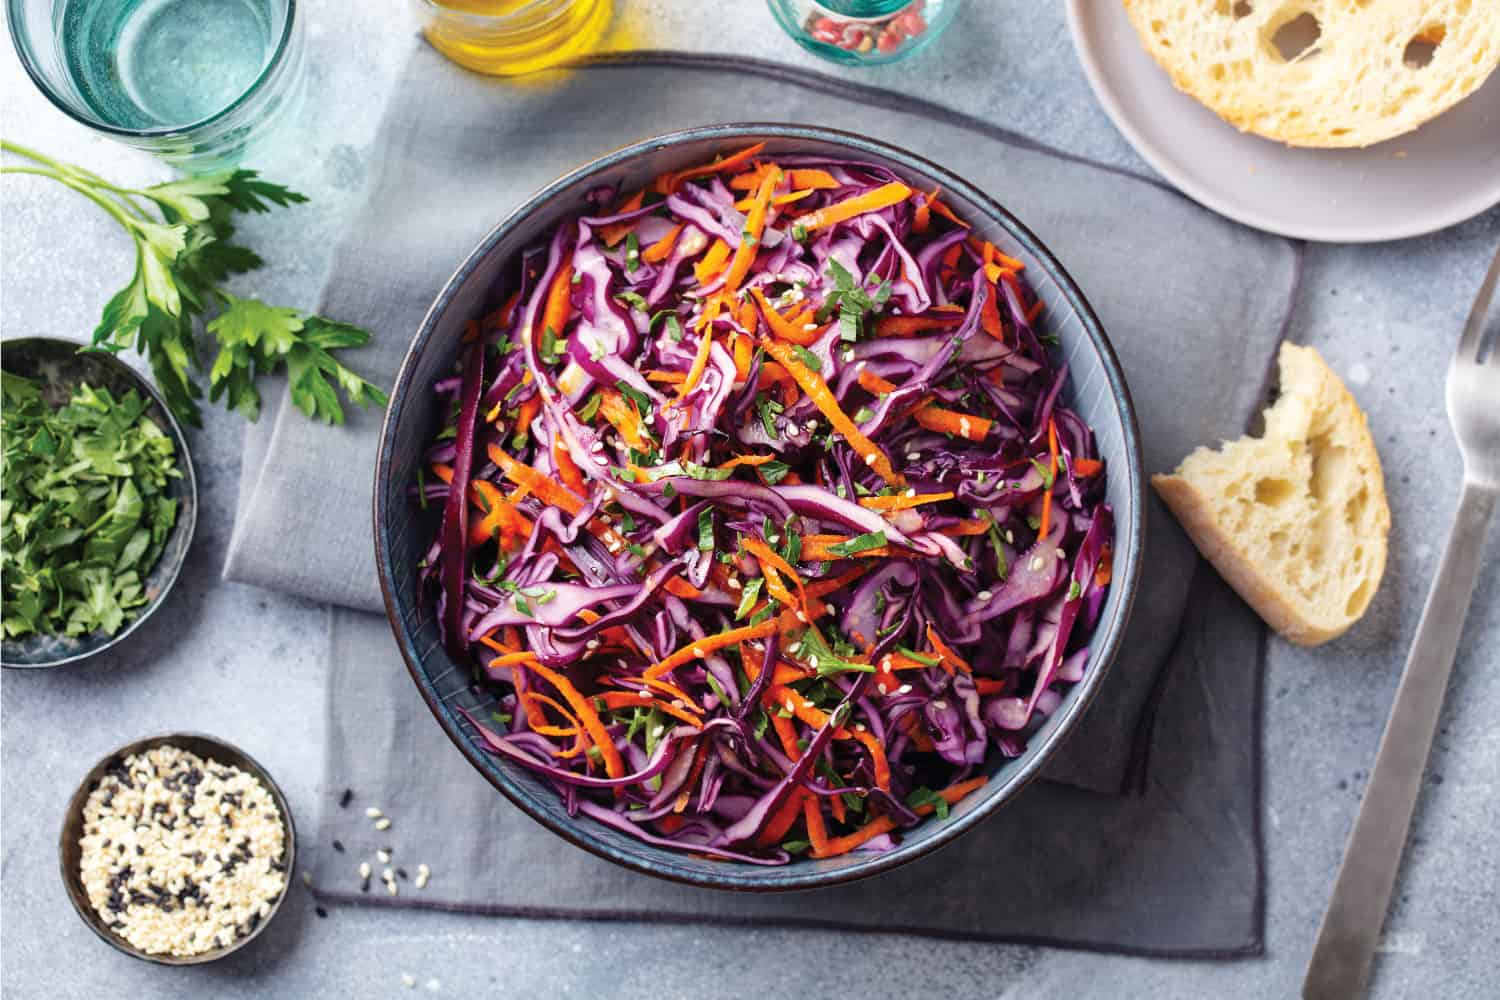 Red cabbage salad, Coleslaw in a bowl. Grey background